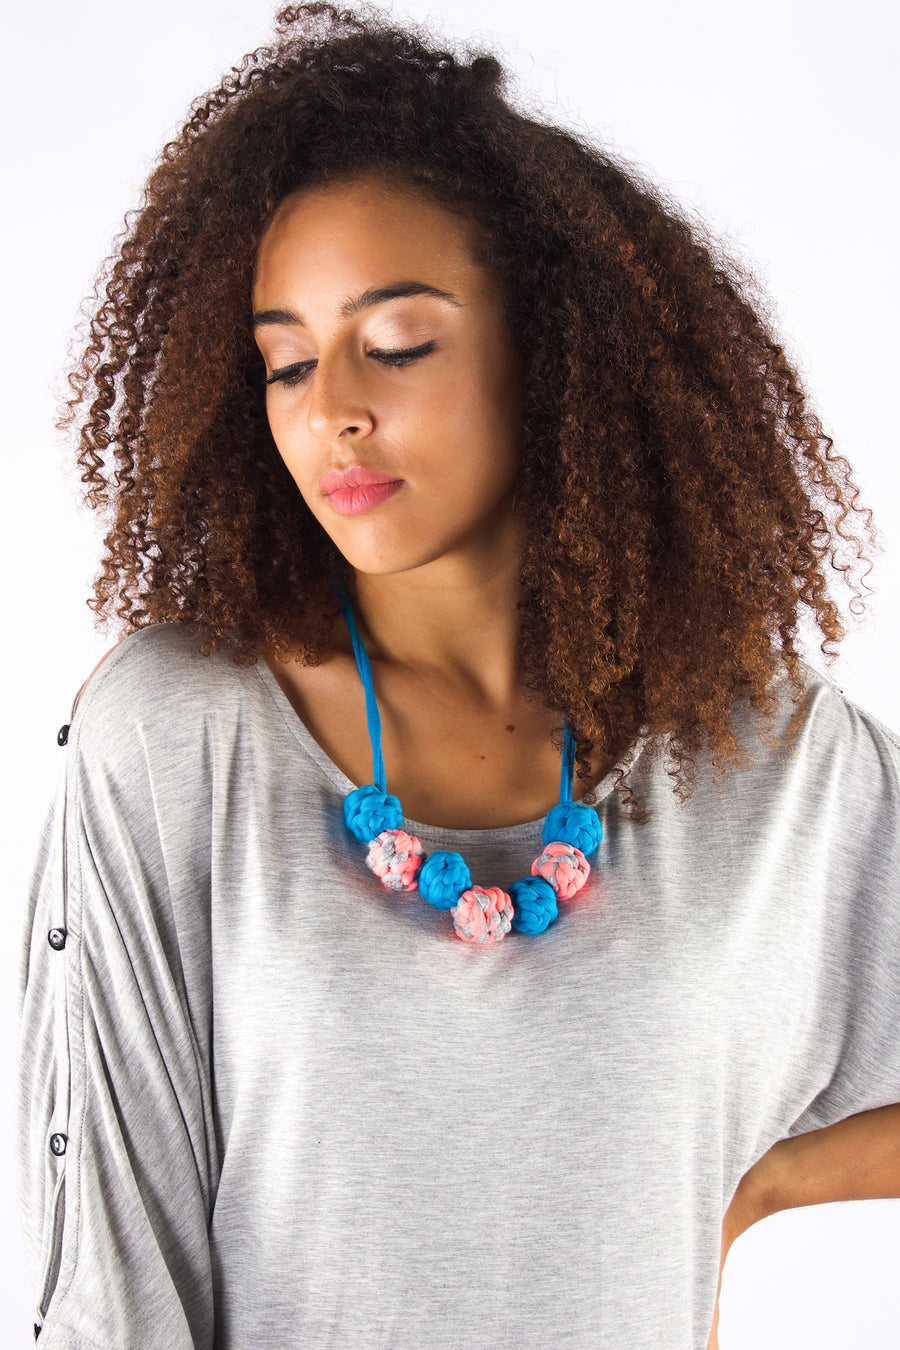 Taikensonzai Zafira Necklace made from upcycled textile offcuts, available exclusively on ZERRIN